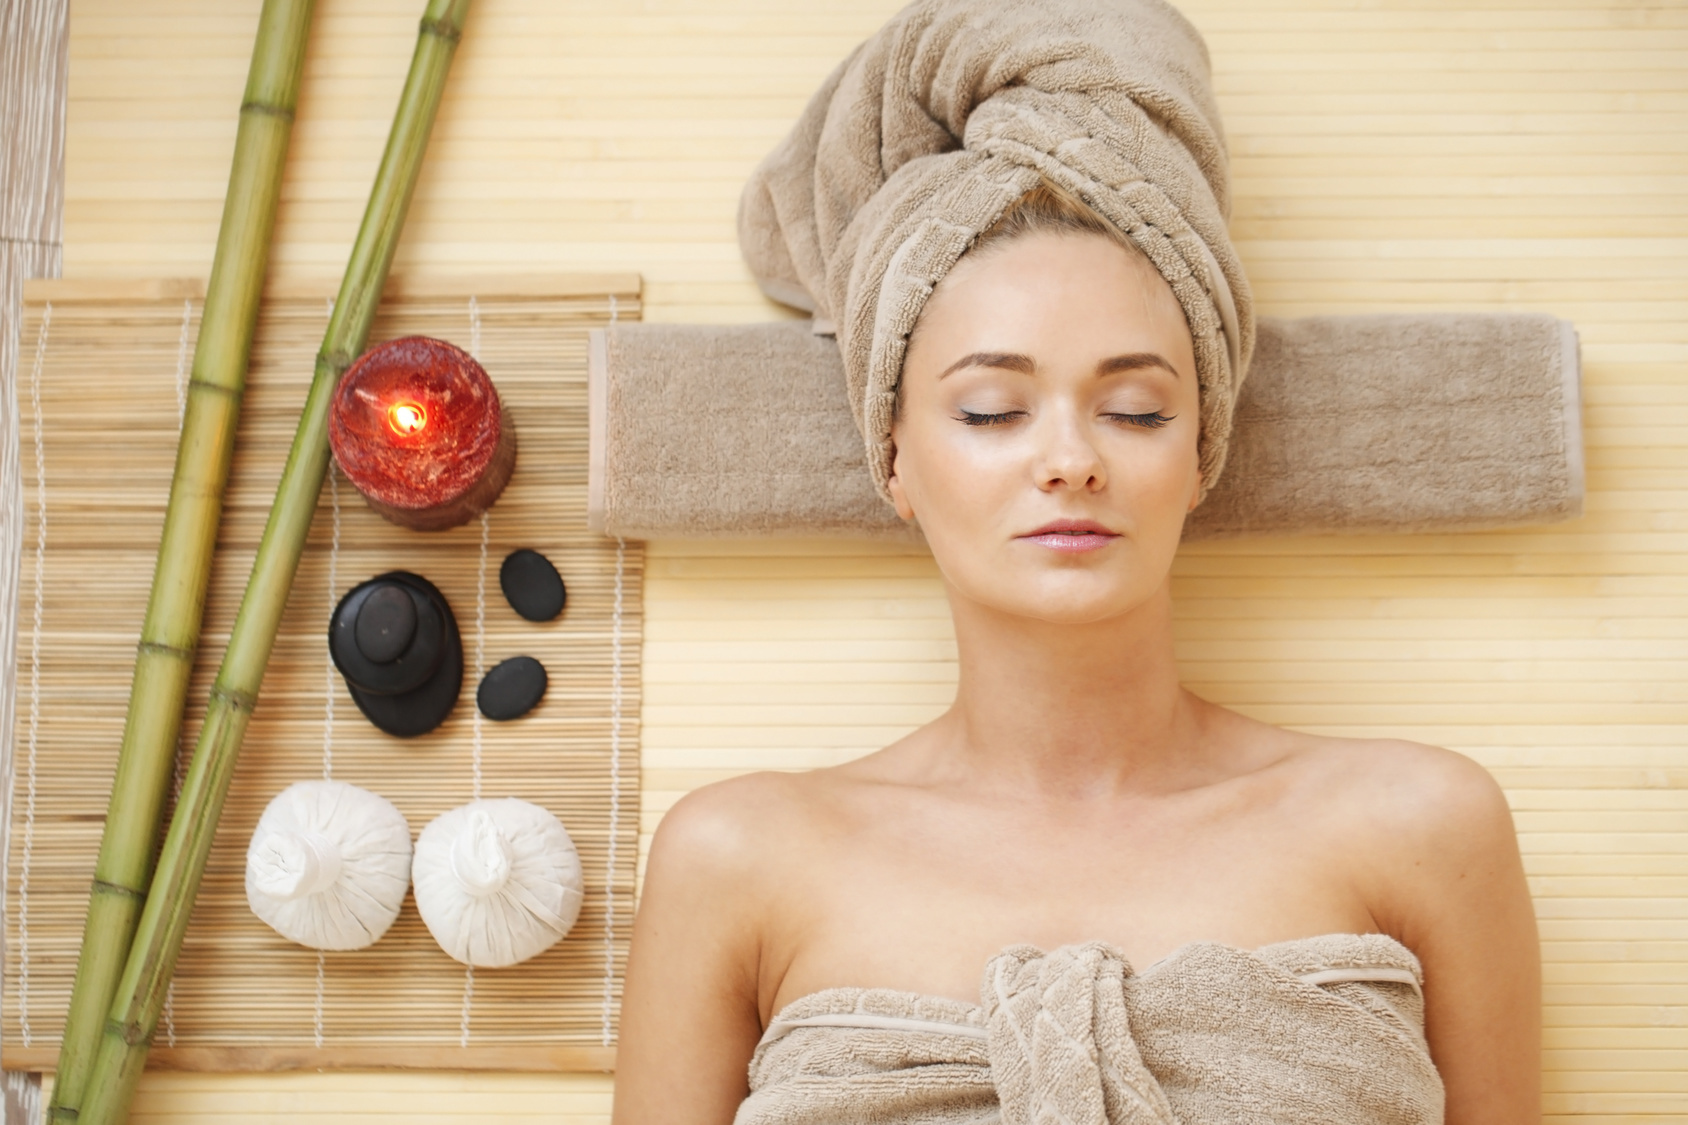 50 Year Established & Reputable High-End Salon and Day Spa